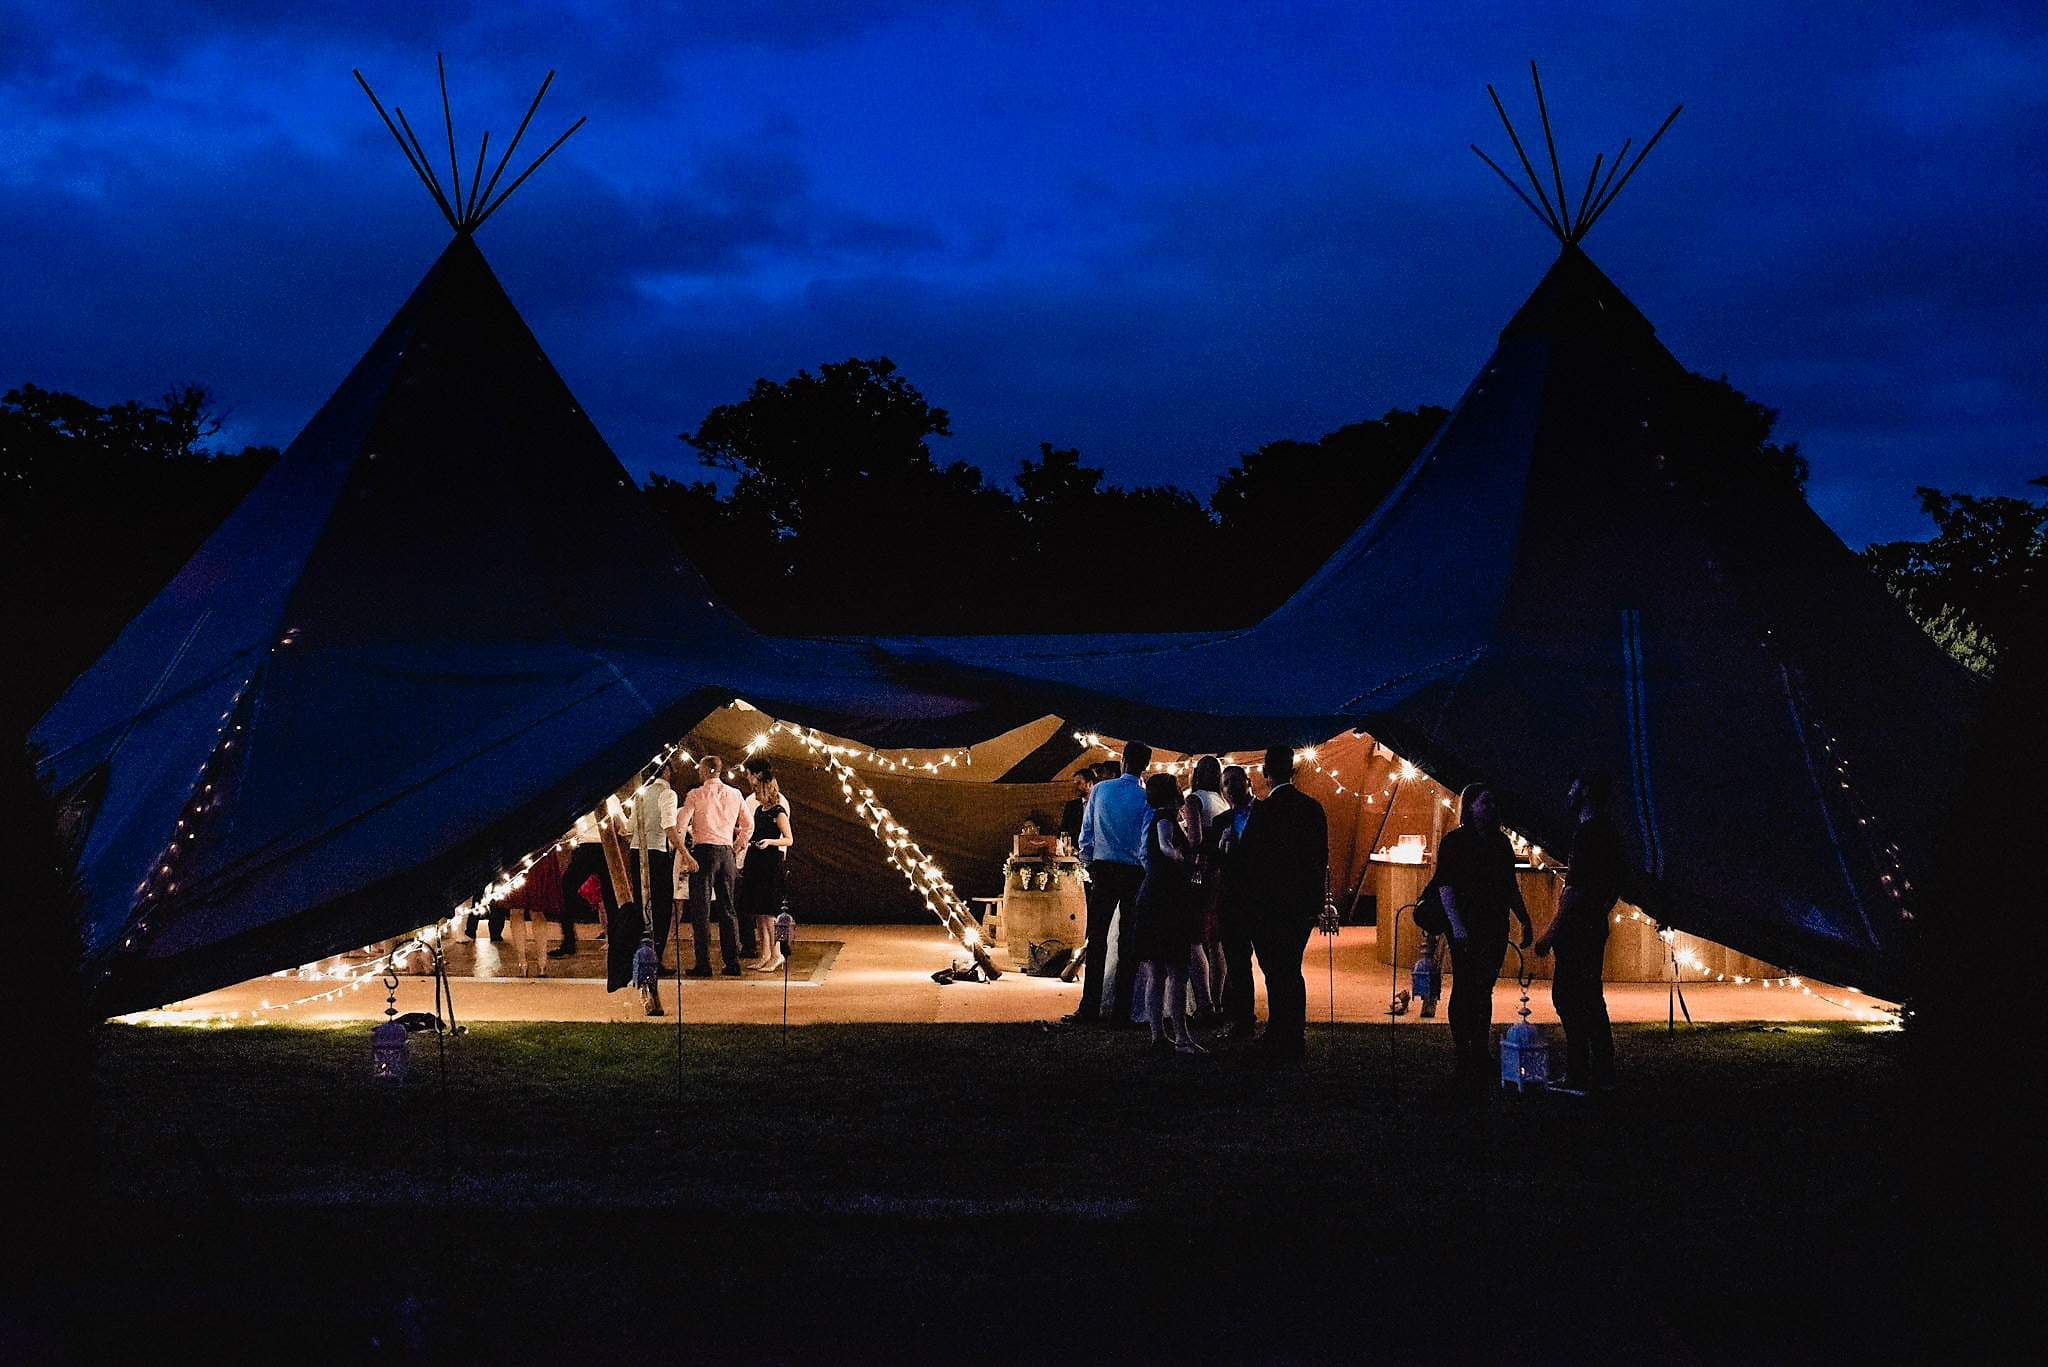 Tipi lit up at night and wedding guests stand in front and inside it